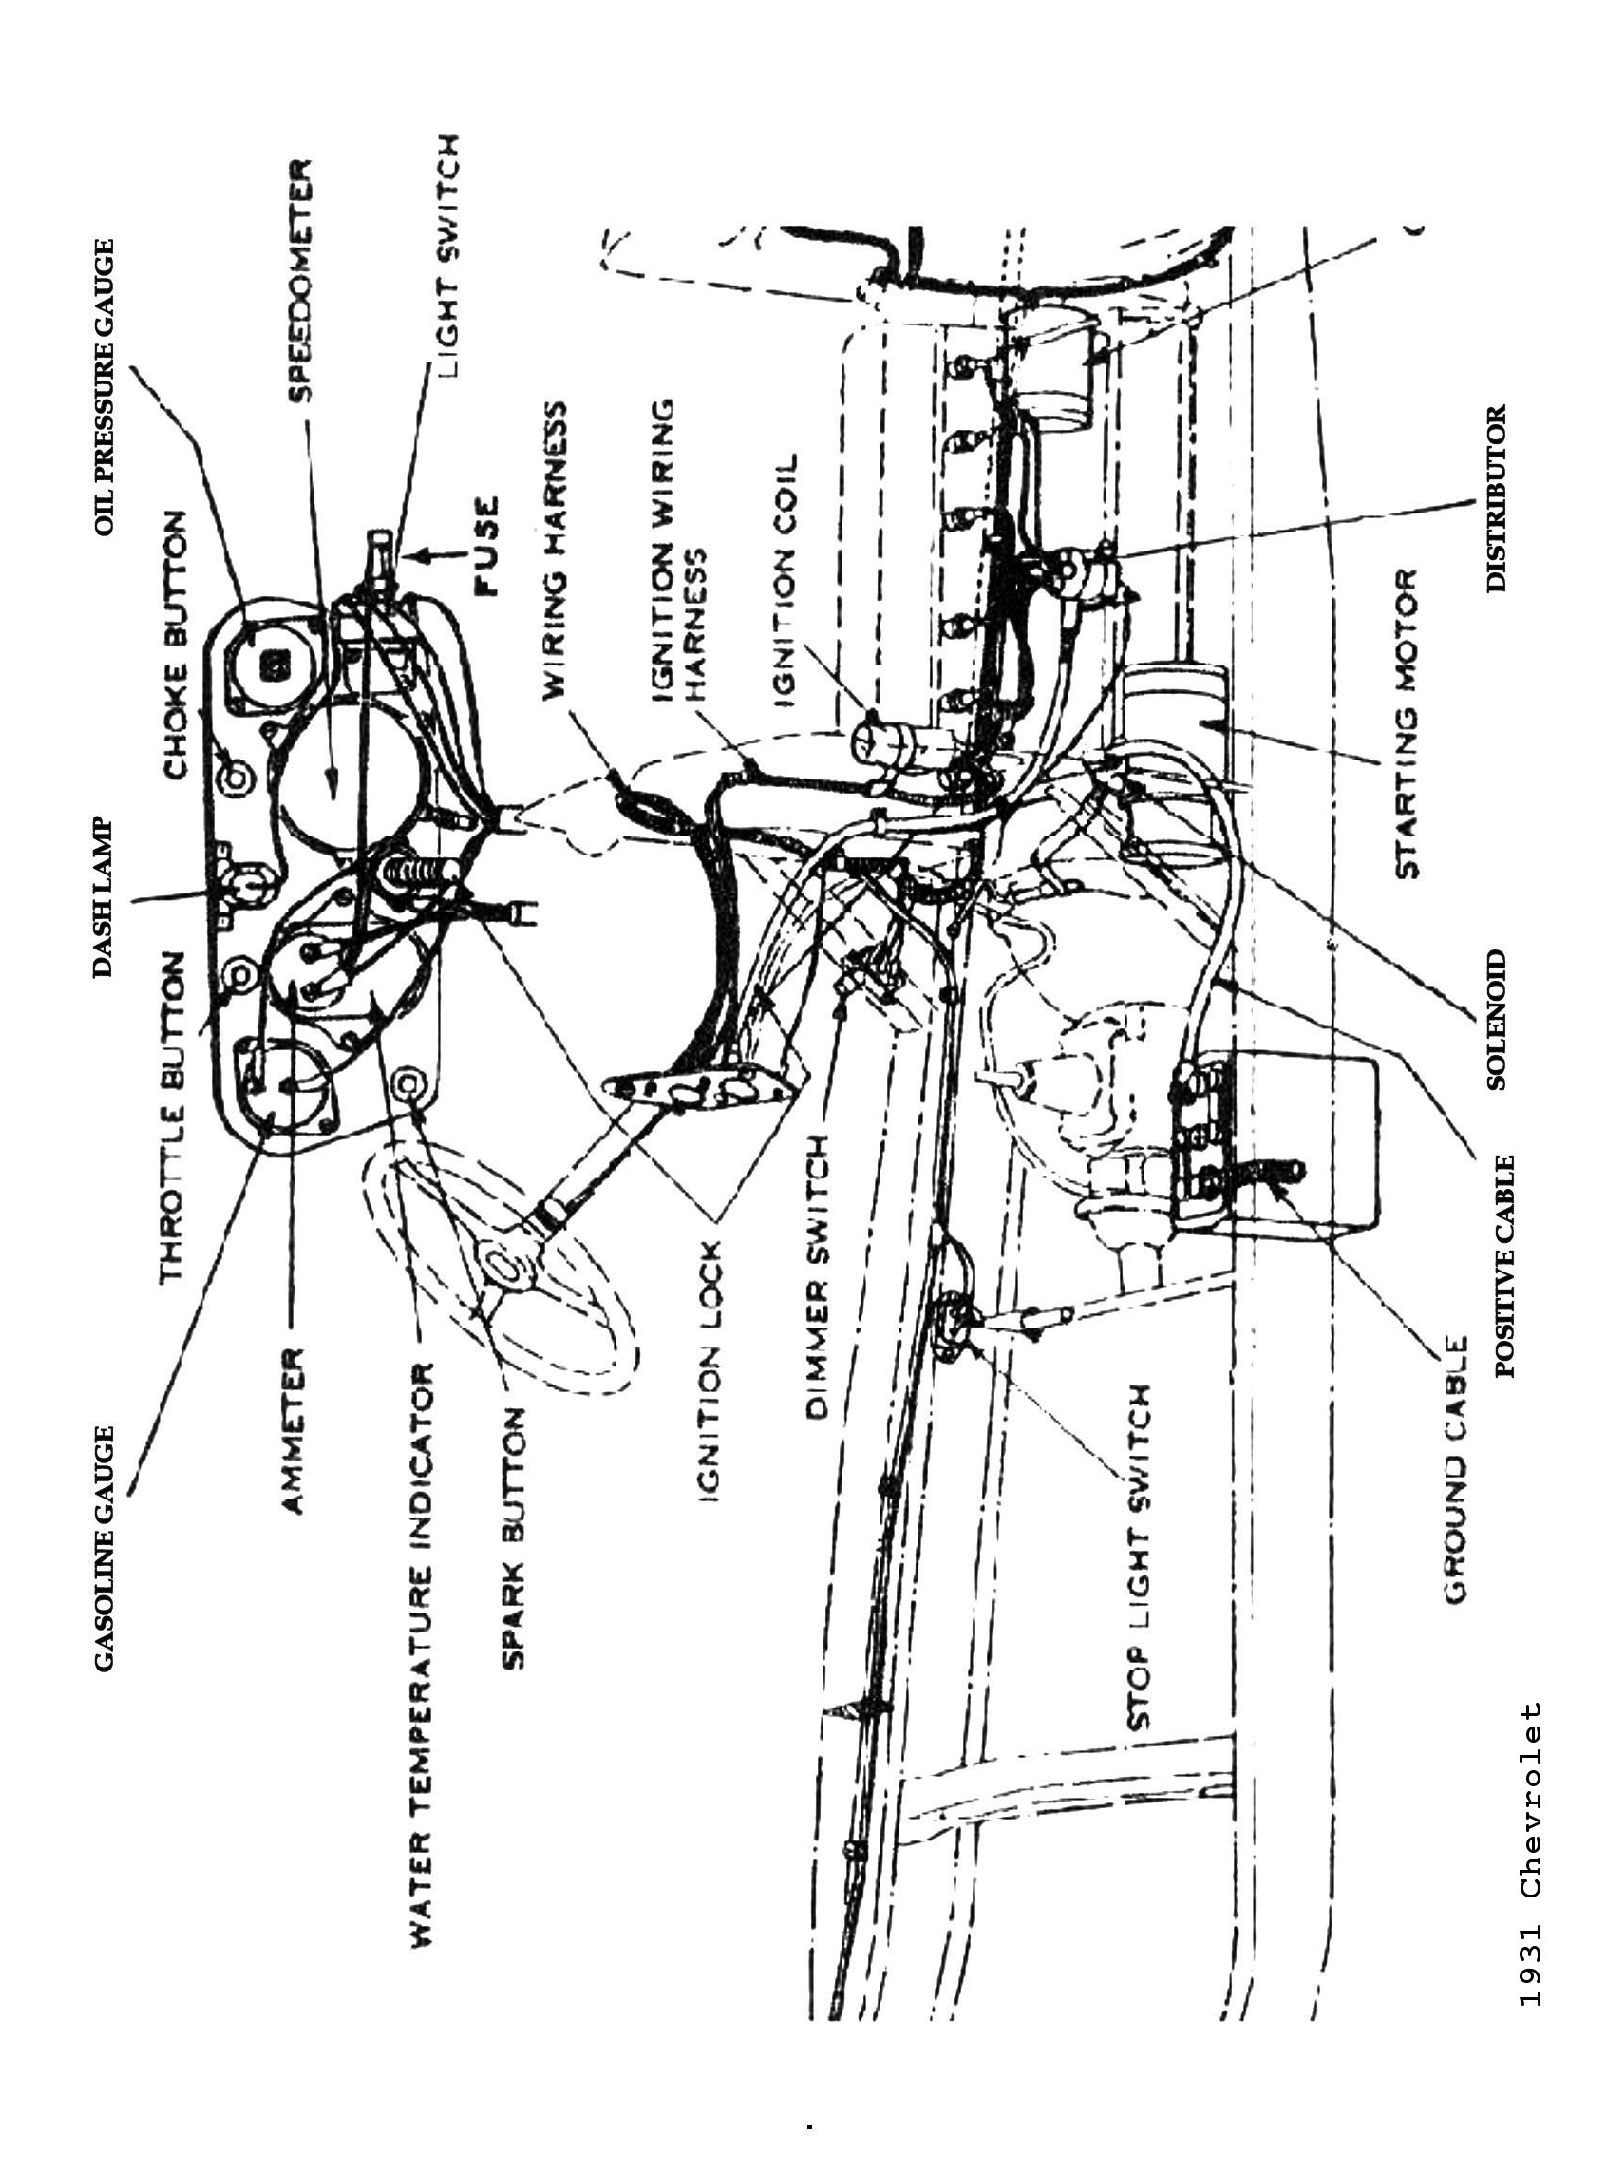 1926 Ford Wiring Diagram Library Audiovox Pinout Wire Harness Vm9311ts 1931 Diagrams Lighting Ignition